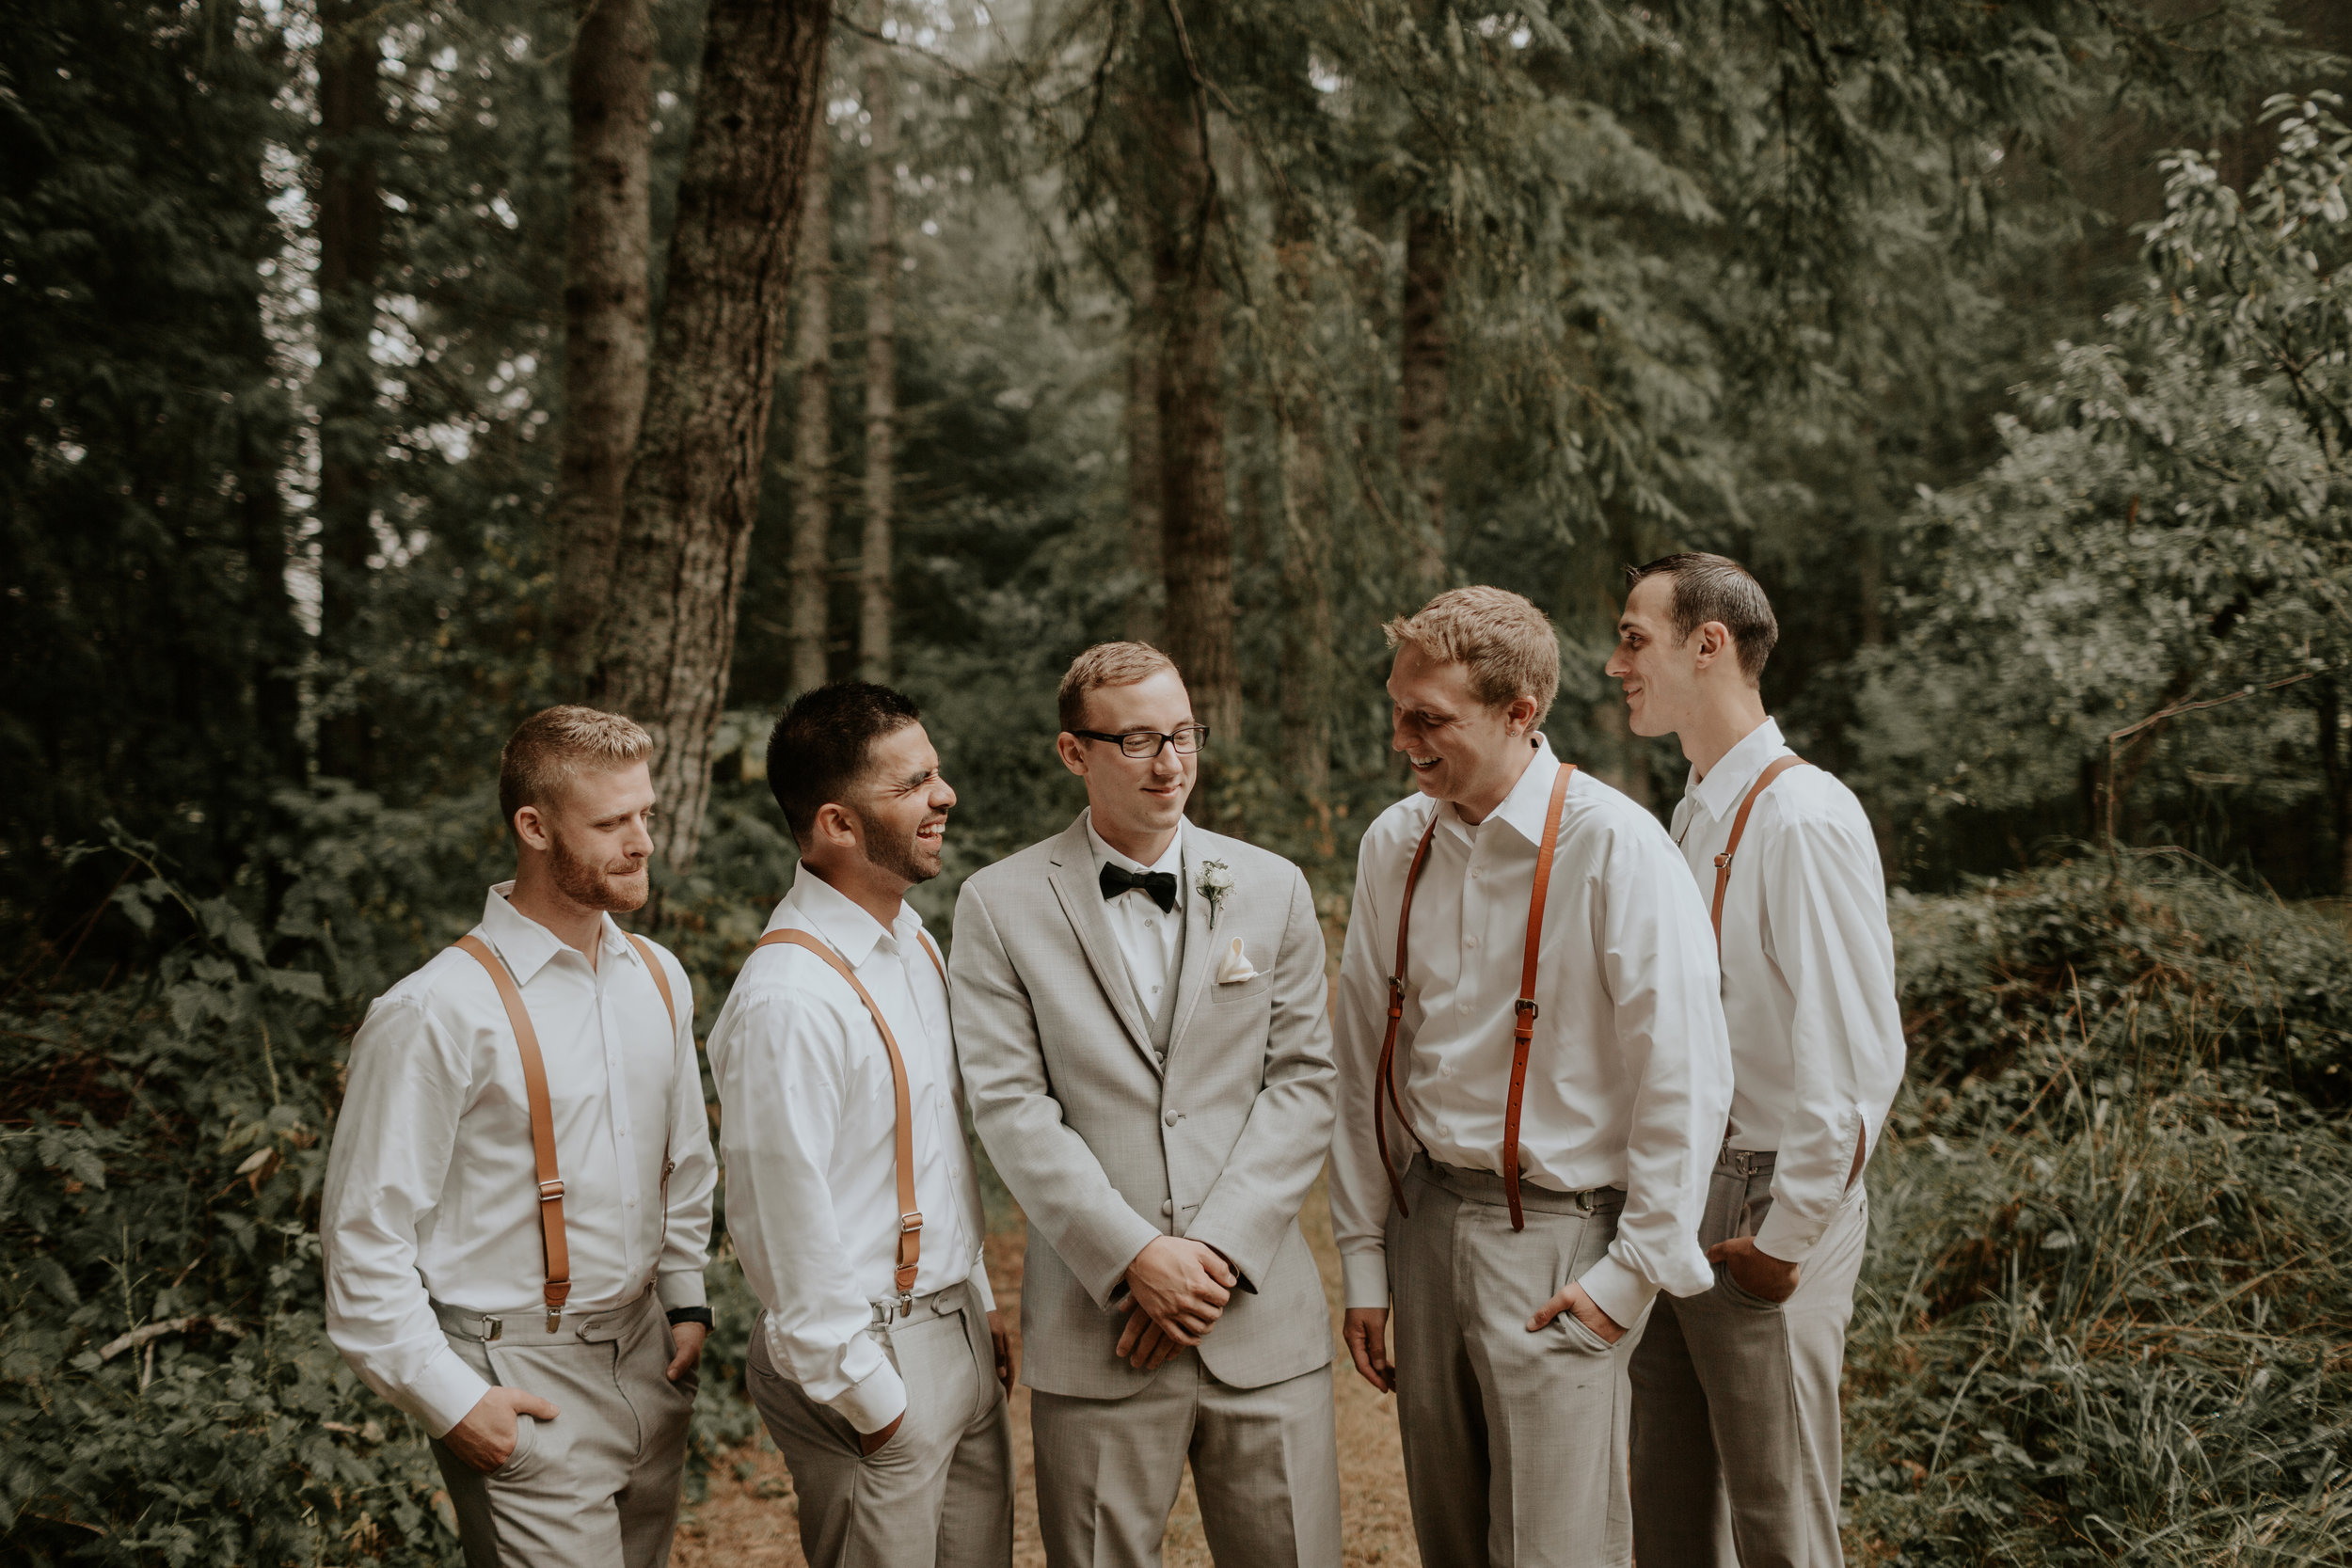 Port-Angeles-elopement-wedding-pnw-olympic-peninsula-photographer-portrait-kayladawnphoto-kayla-dawn-photography-olympic-national-park-25.jpg